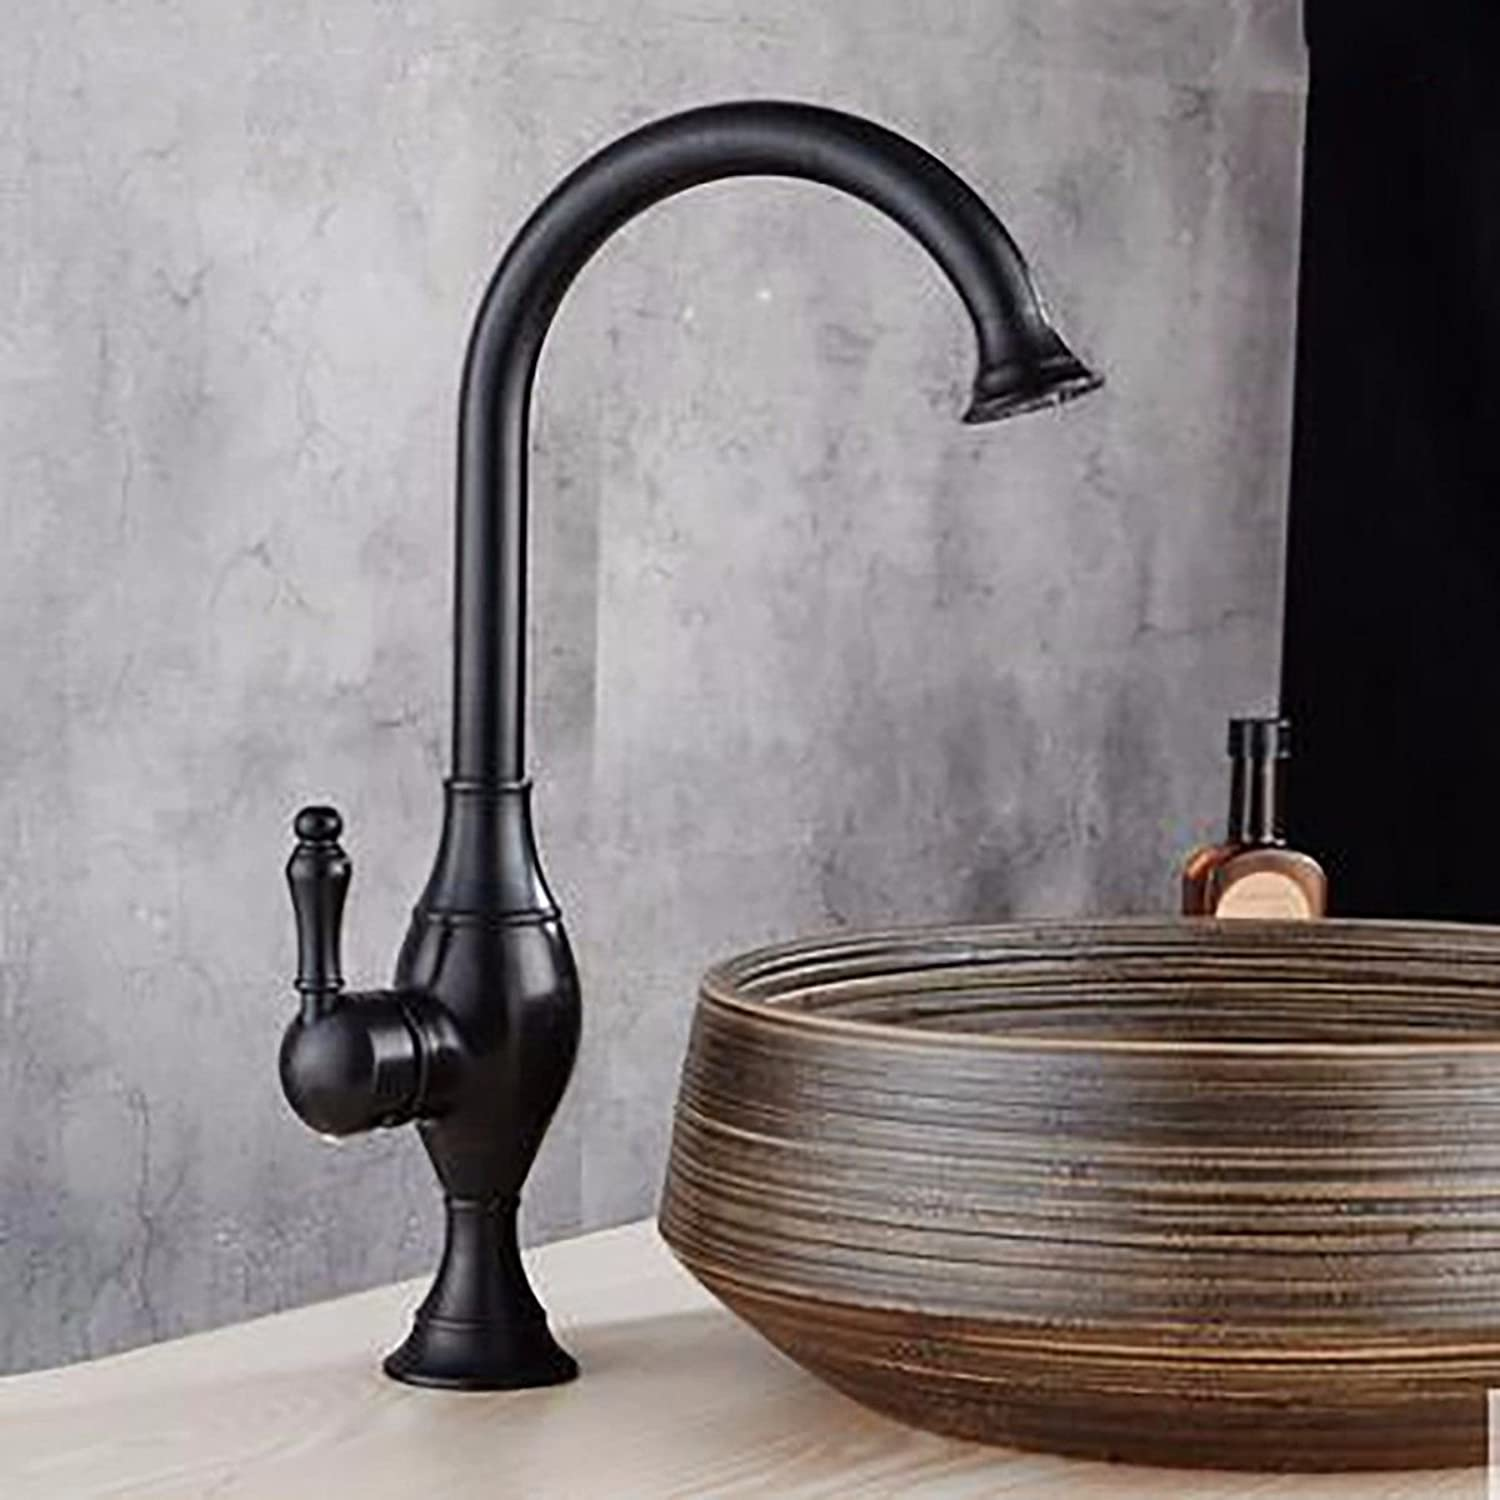 Lpophy Bathroom Sink Mixer Taps Faucet Bath Waterfall Cold and Hot Water Tap for Washroom Bathroom and Kitchen Copper Hot and Cold Water redating Black Bronze C